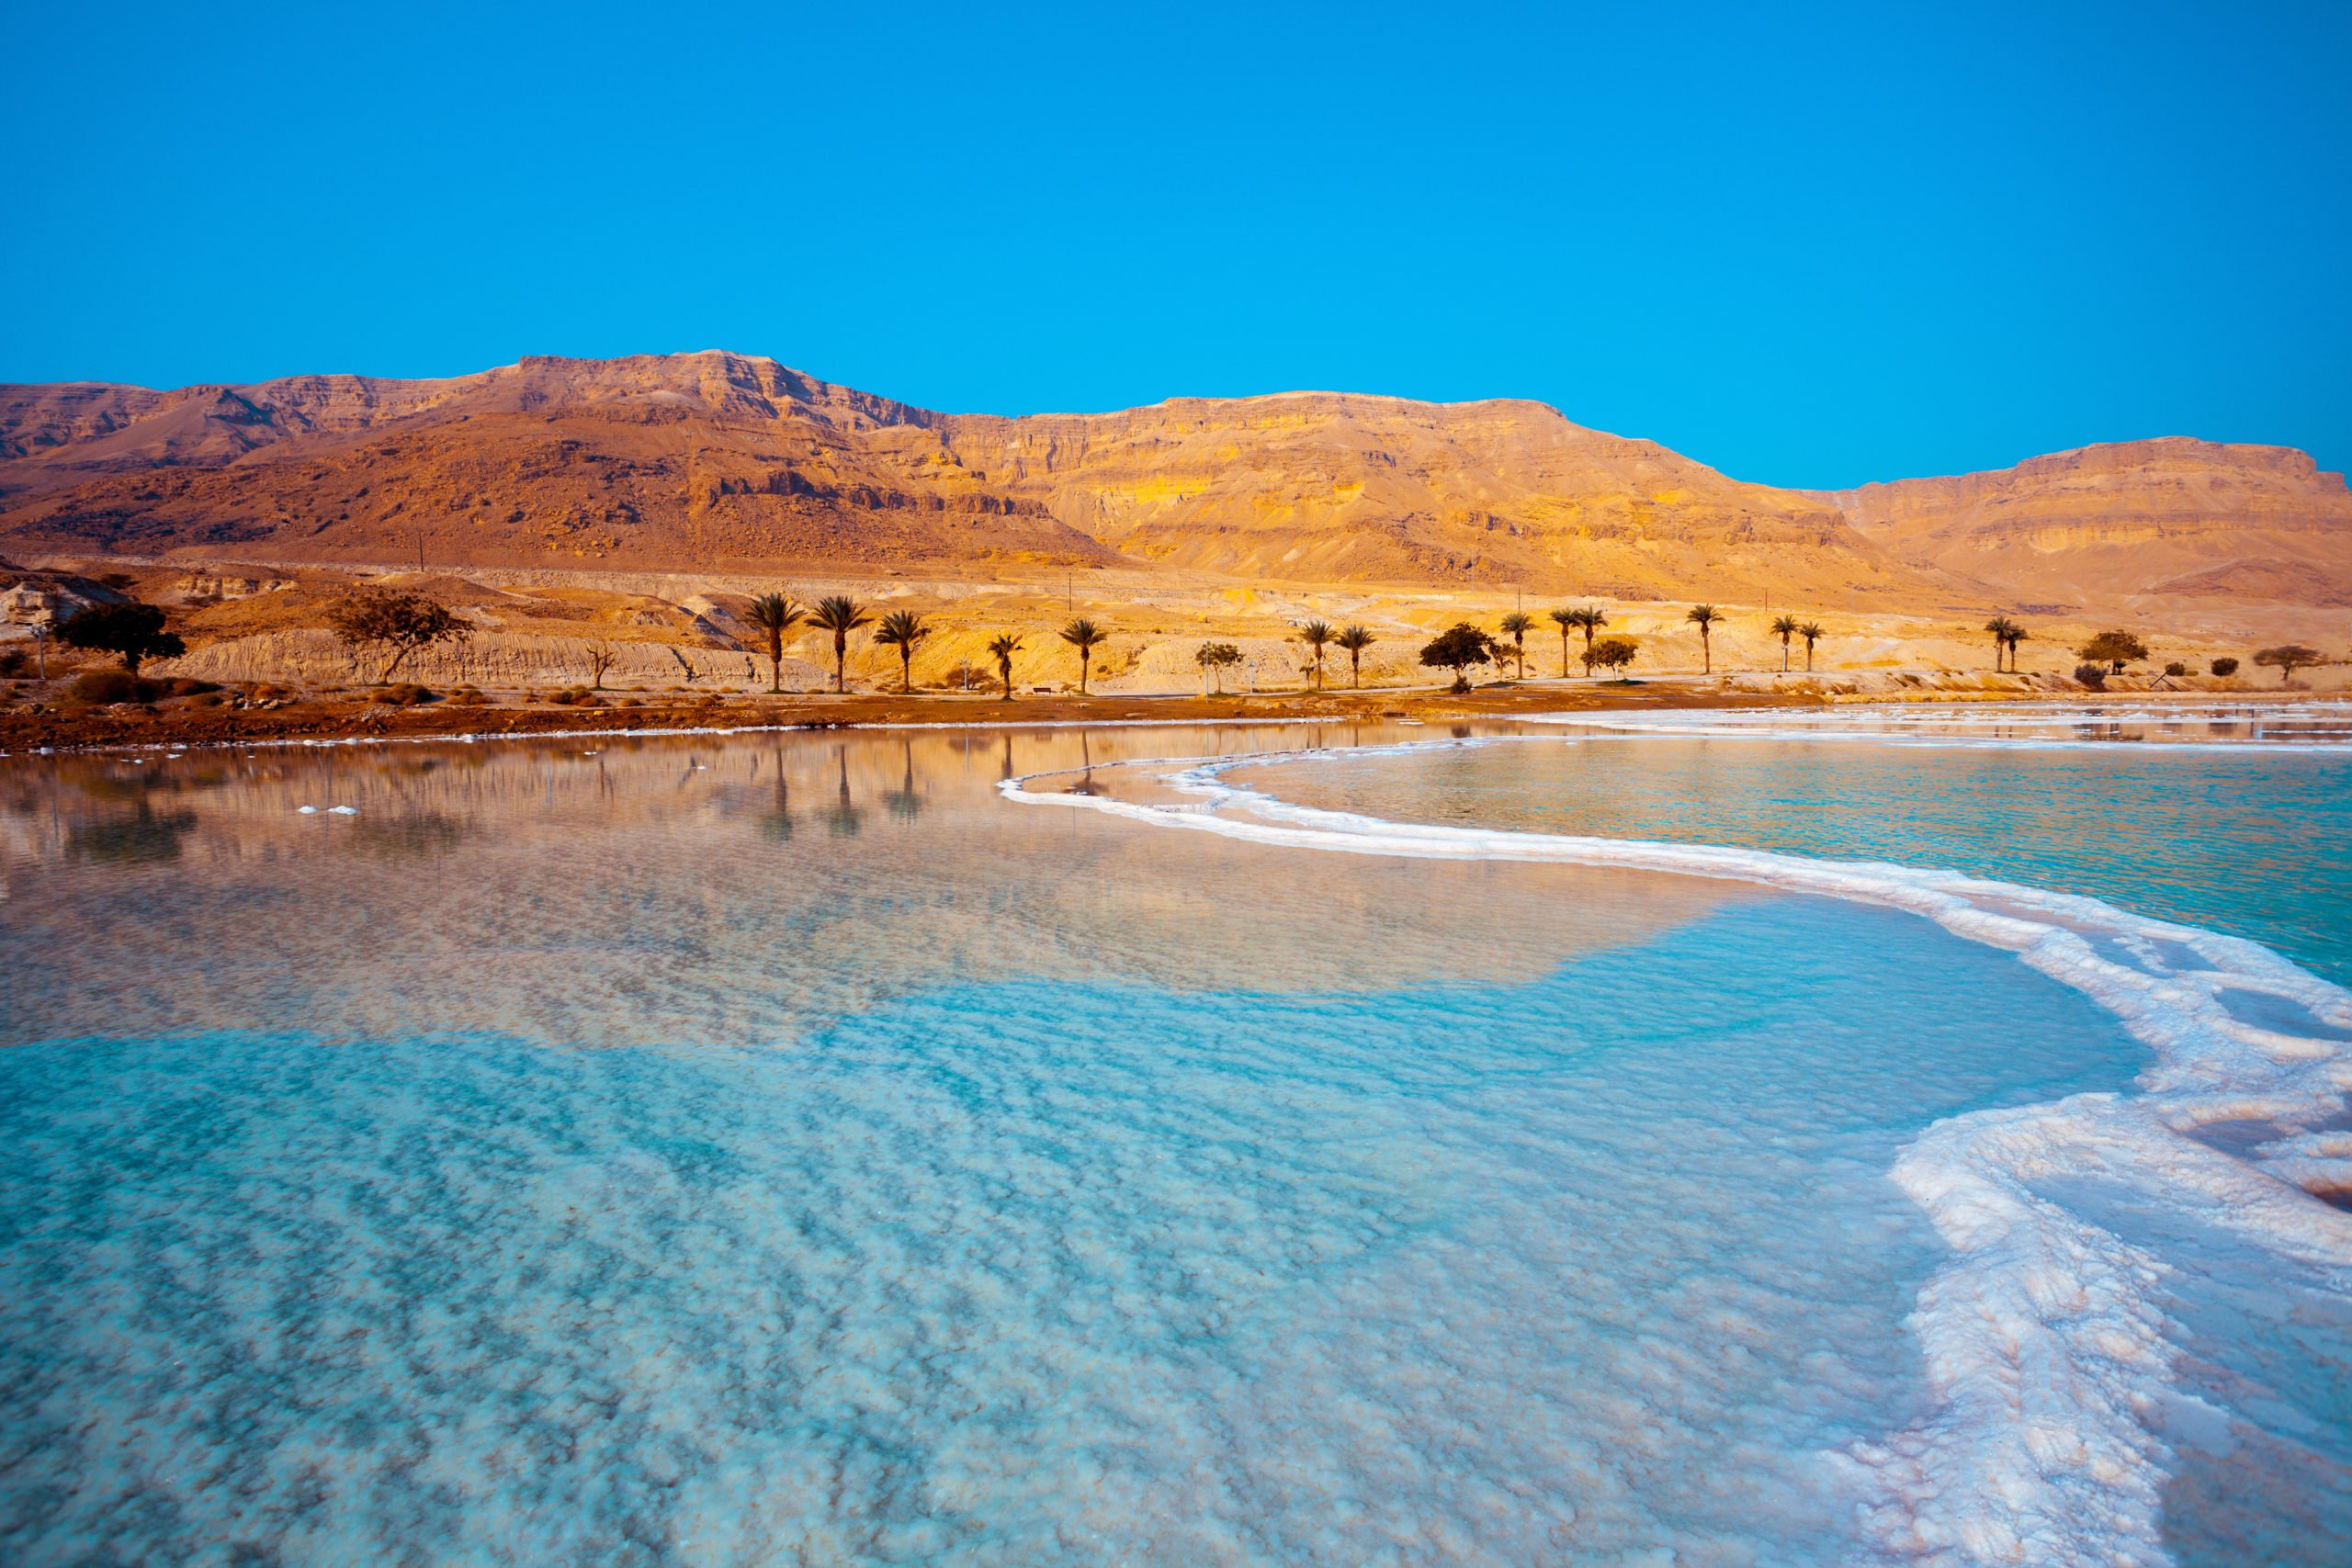 Relax At The Dead Sea On Your Amman, Madaba, Mount Nebo, Dead Sea Day Tour From Amman